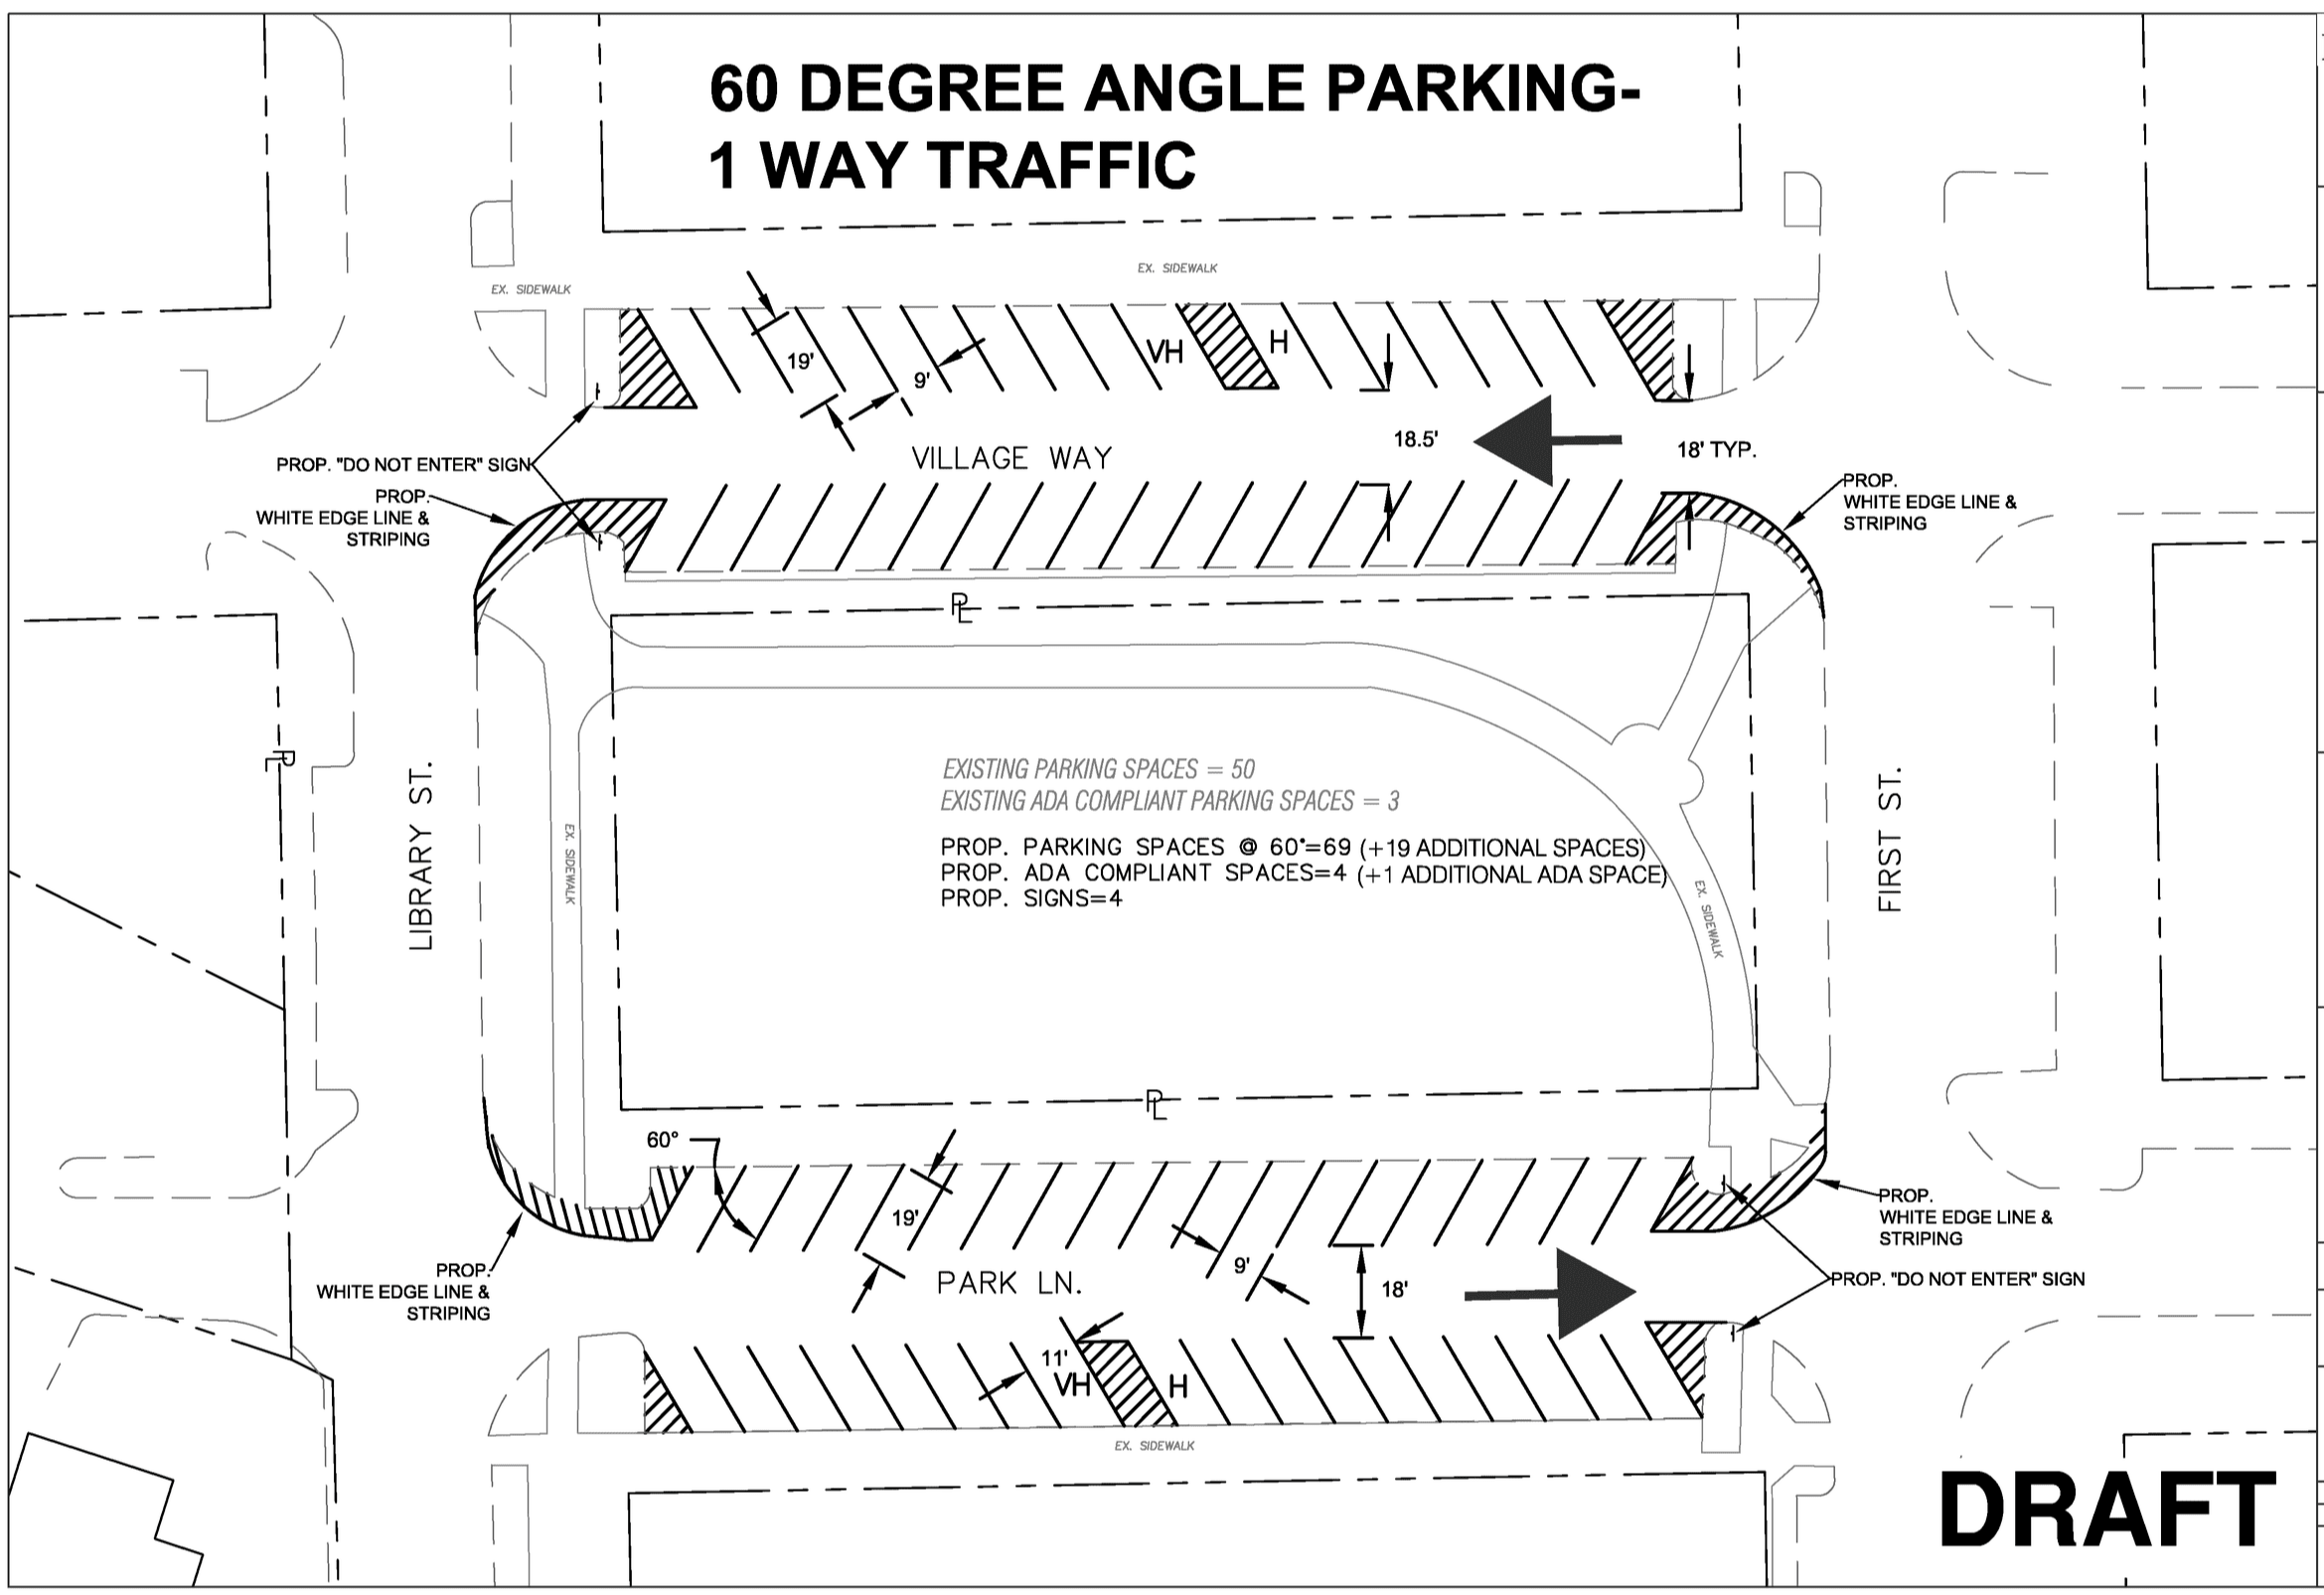 Exhibit B - Proposed 60 Degree Parking Layout